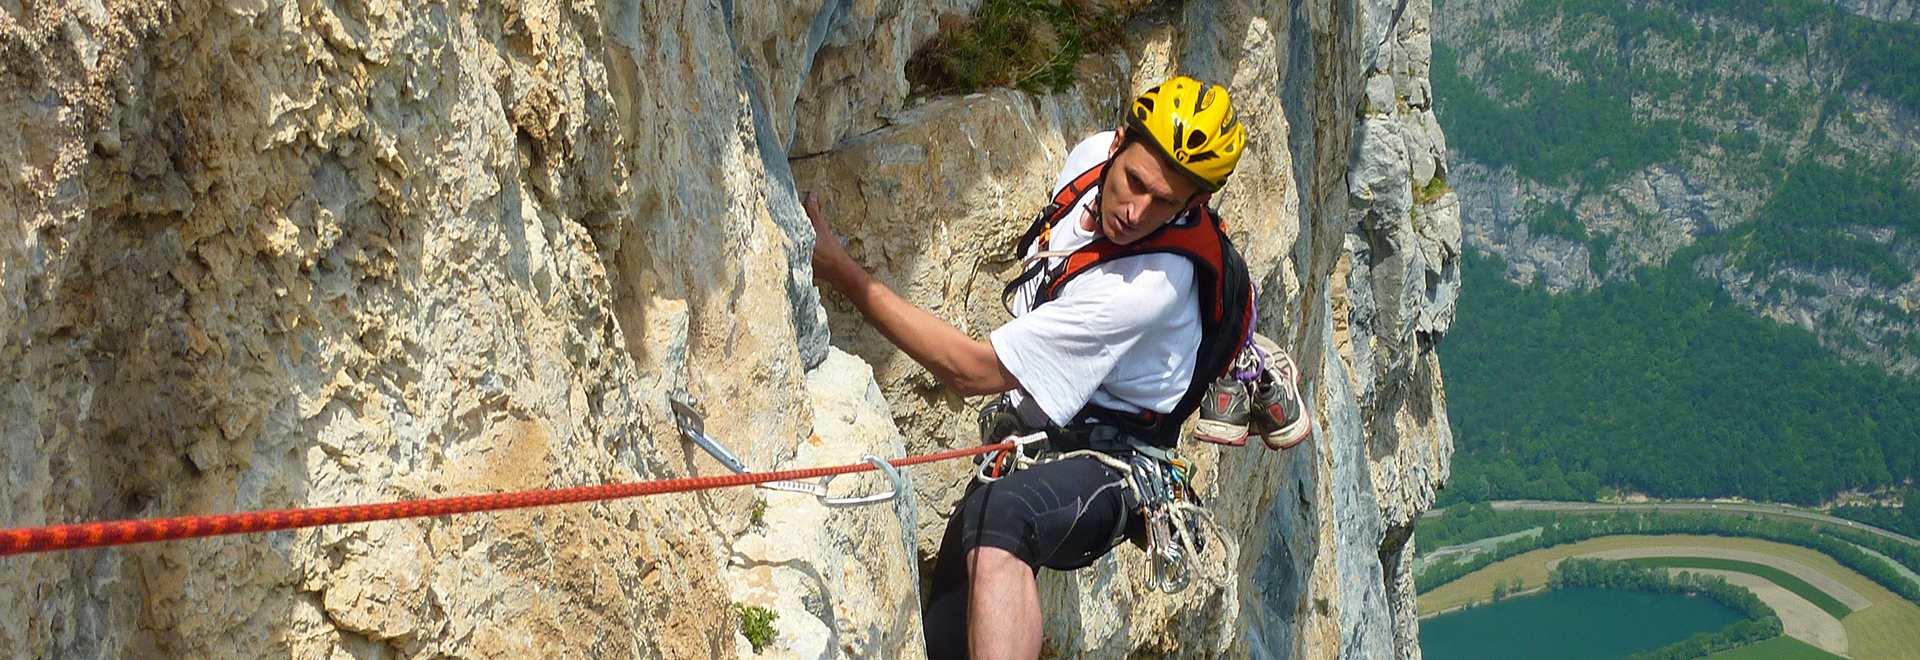 Climbing in France